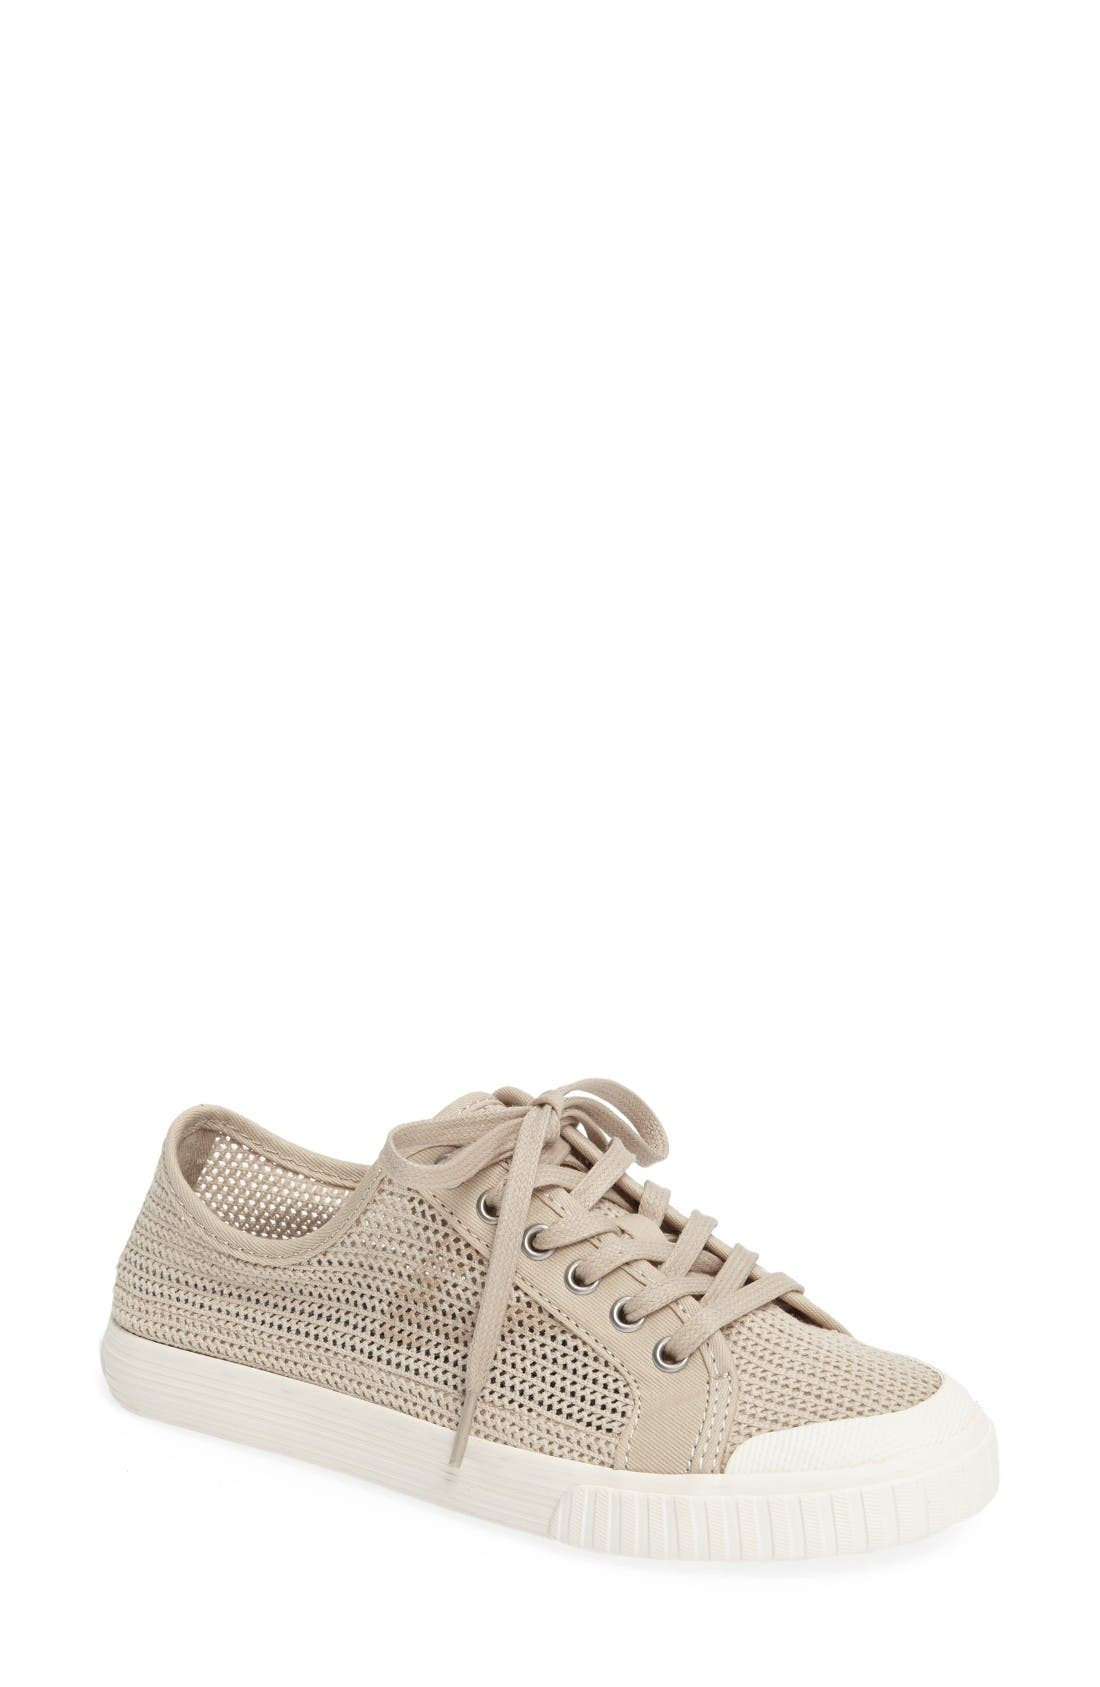 Tretorn 'Tournament Net' Sneaker (Women)